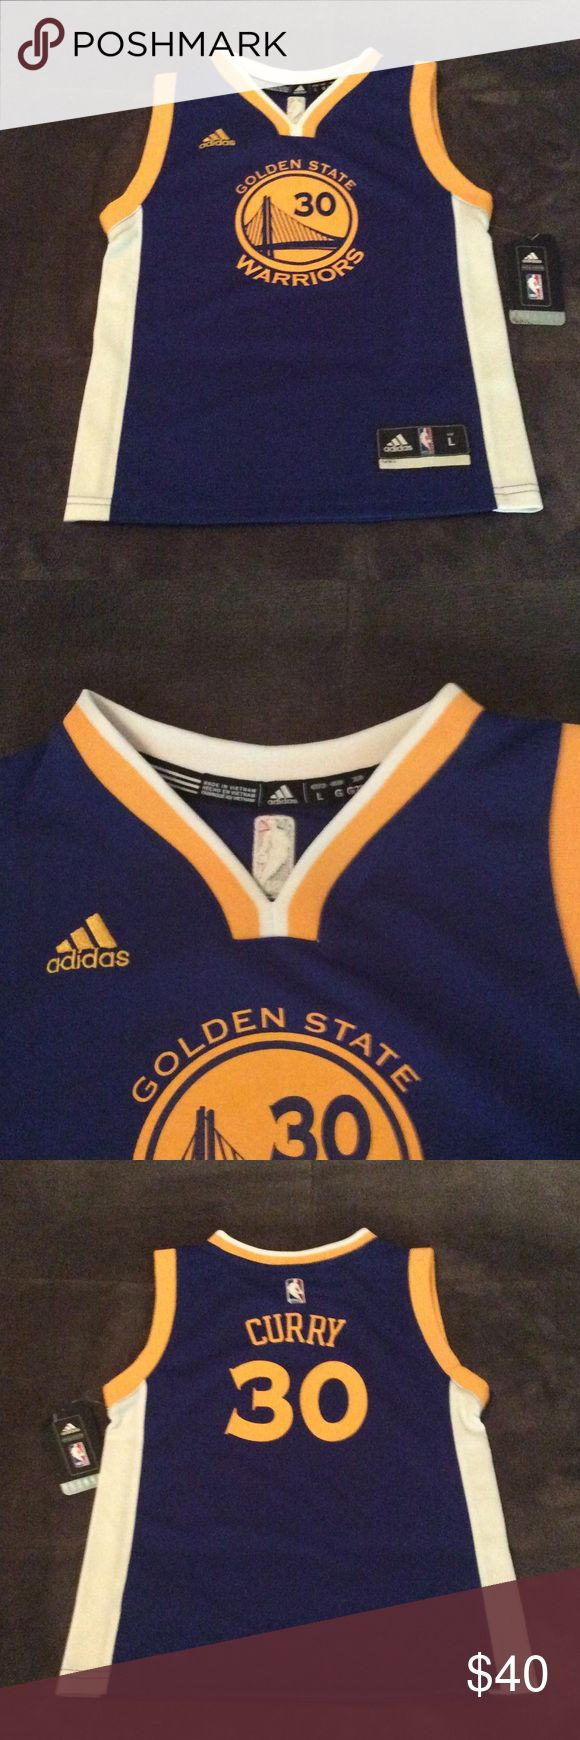 "Kids Stephen Curry 30 Golden State Warriors Jersey Authentic Kid's Stephen Curry Golden State Warriors Revolution 30 Jersey, Size 7/XL.  Breathable fabric and sleeveless arms make this a great top for summer, and it's perfect for layering in colder temperatures.  Best suited for kids 48-49 1/2"" inches in height and 56-58 1/2"" inches in weight or less.  All measurements are taken from the manufactures specs and are approximate. 🚫 Trades or holds, and I will accept reasonable offers, but only…"